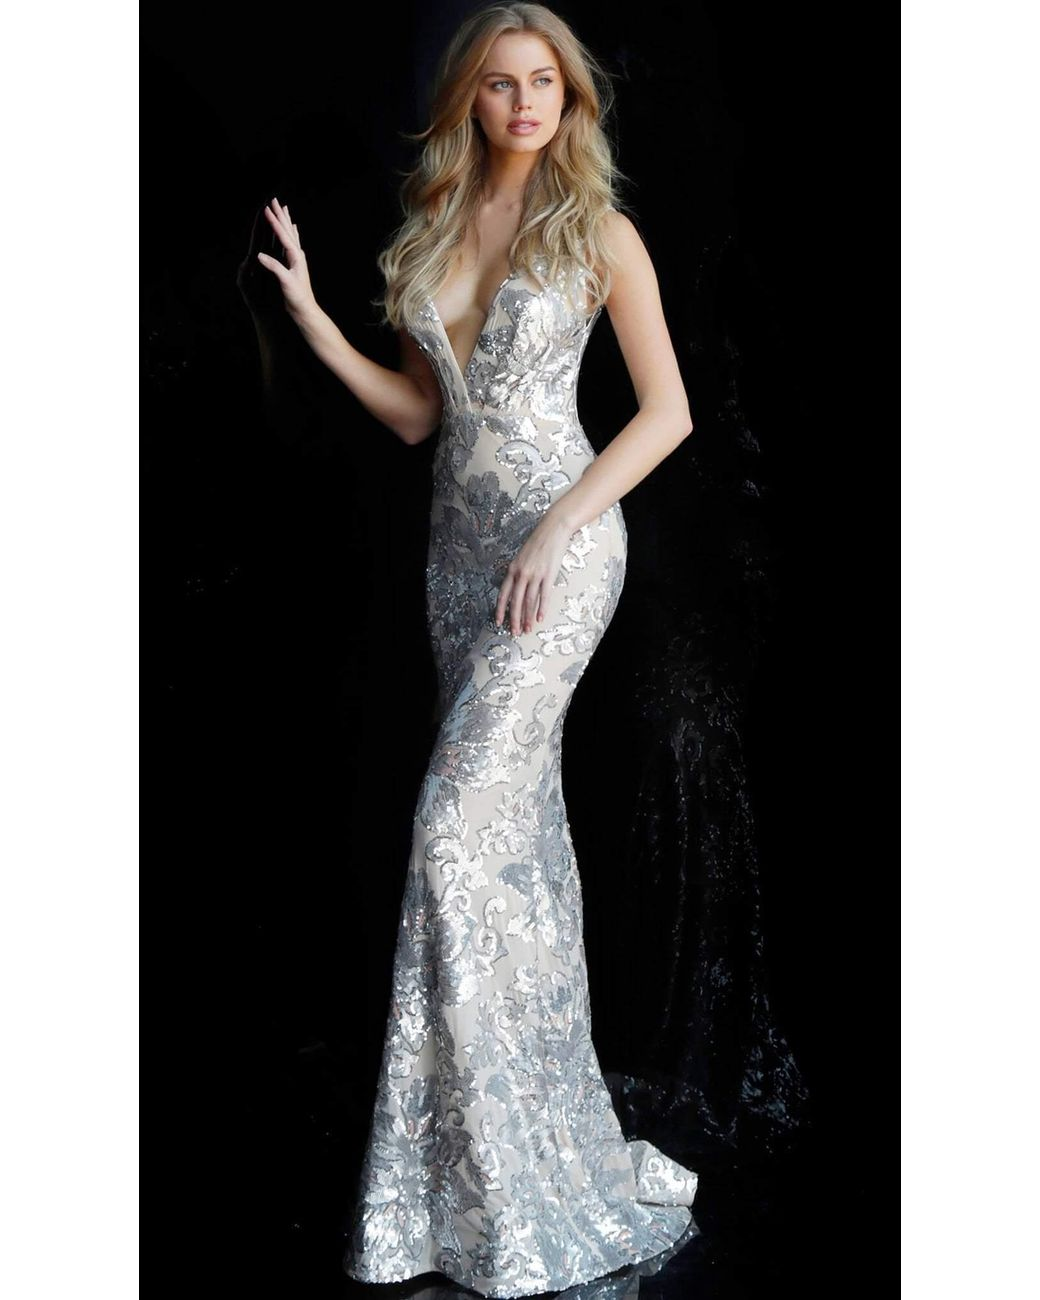 bec6e7f2 Jovani. Women's Metallic Sequined Plunging V-neck Evening Gown 65578 - 1 Pc  Silver/nude In ...